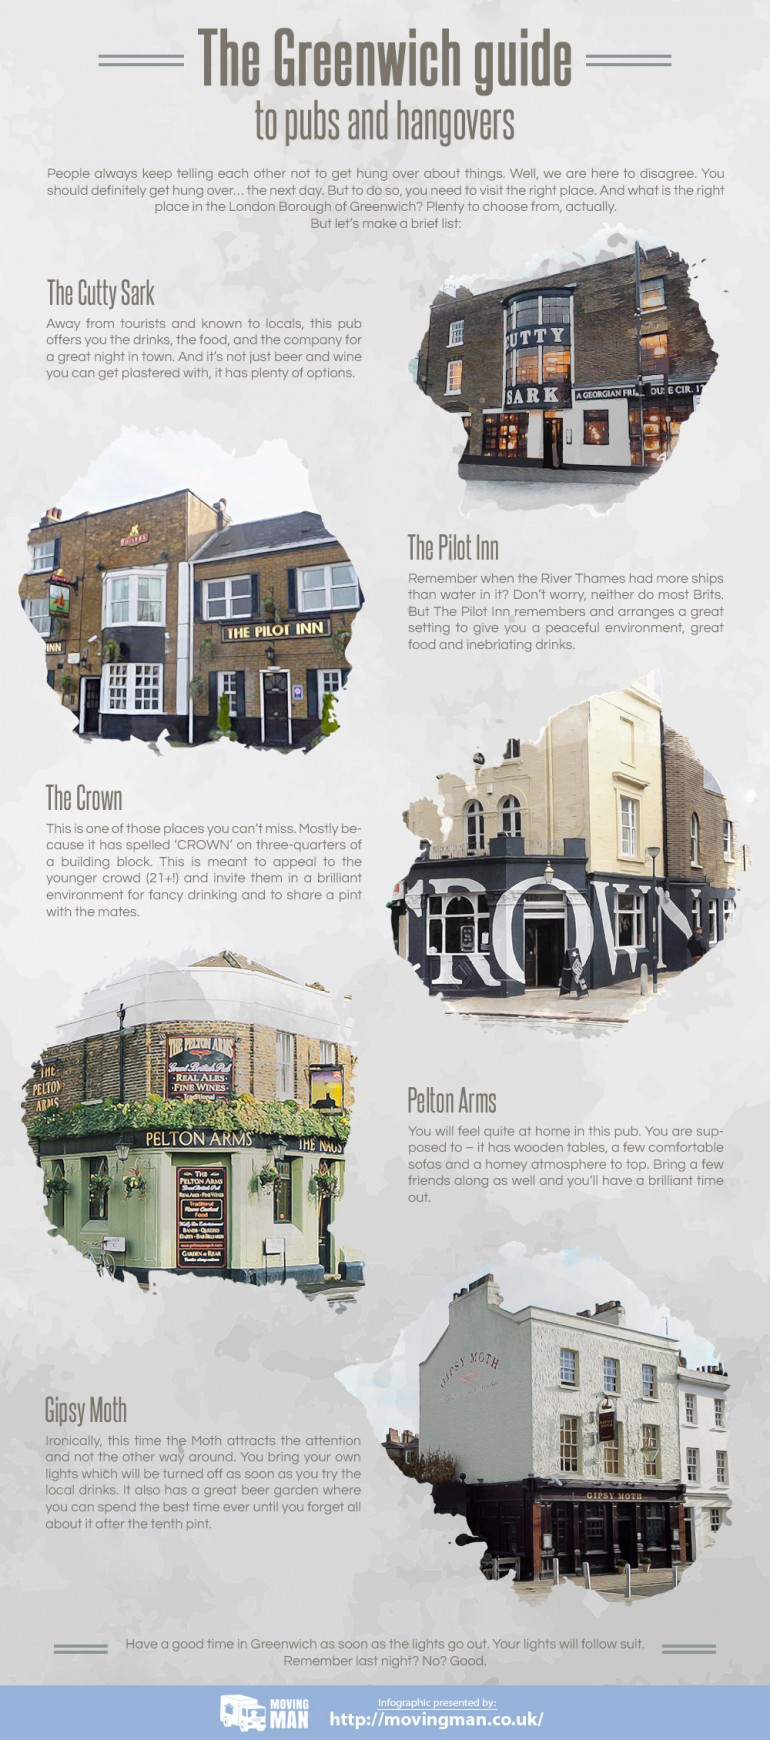 An infographic showing a brief list of places and pubs in the London Borough of Greenwich where  ...